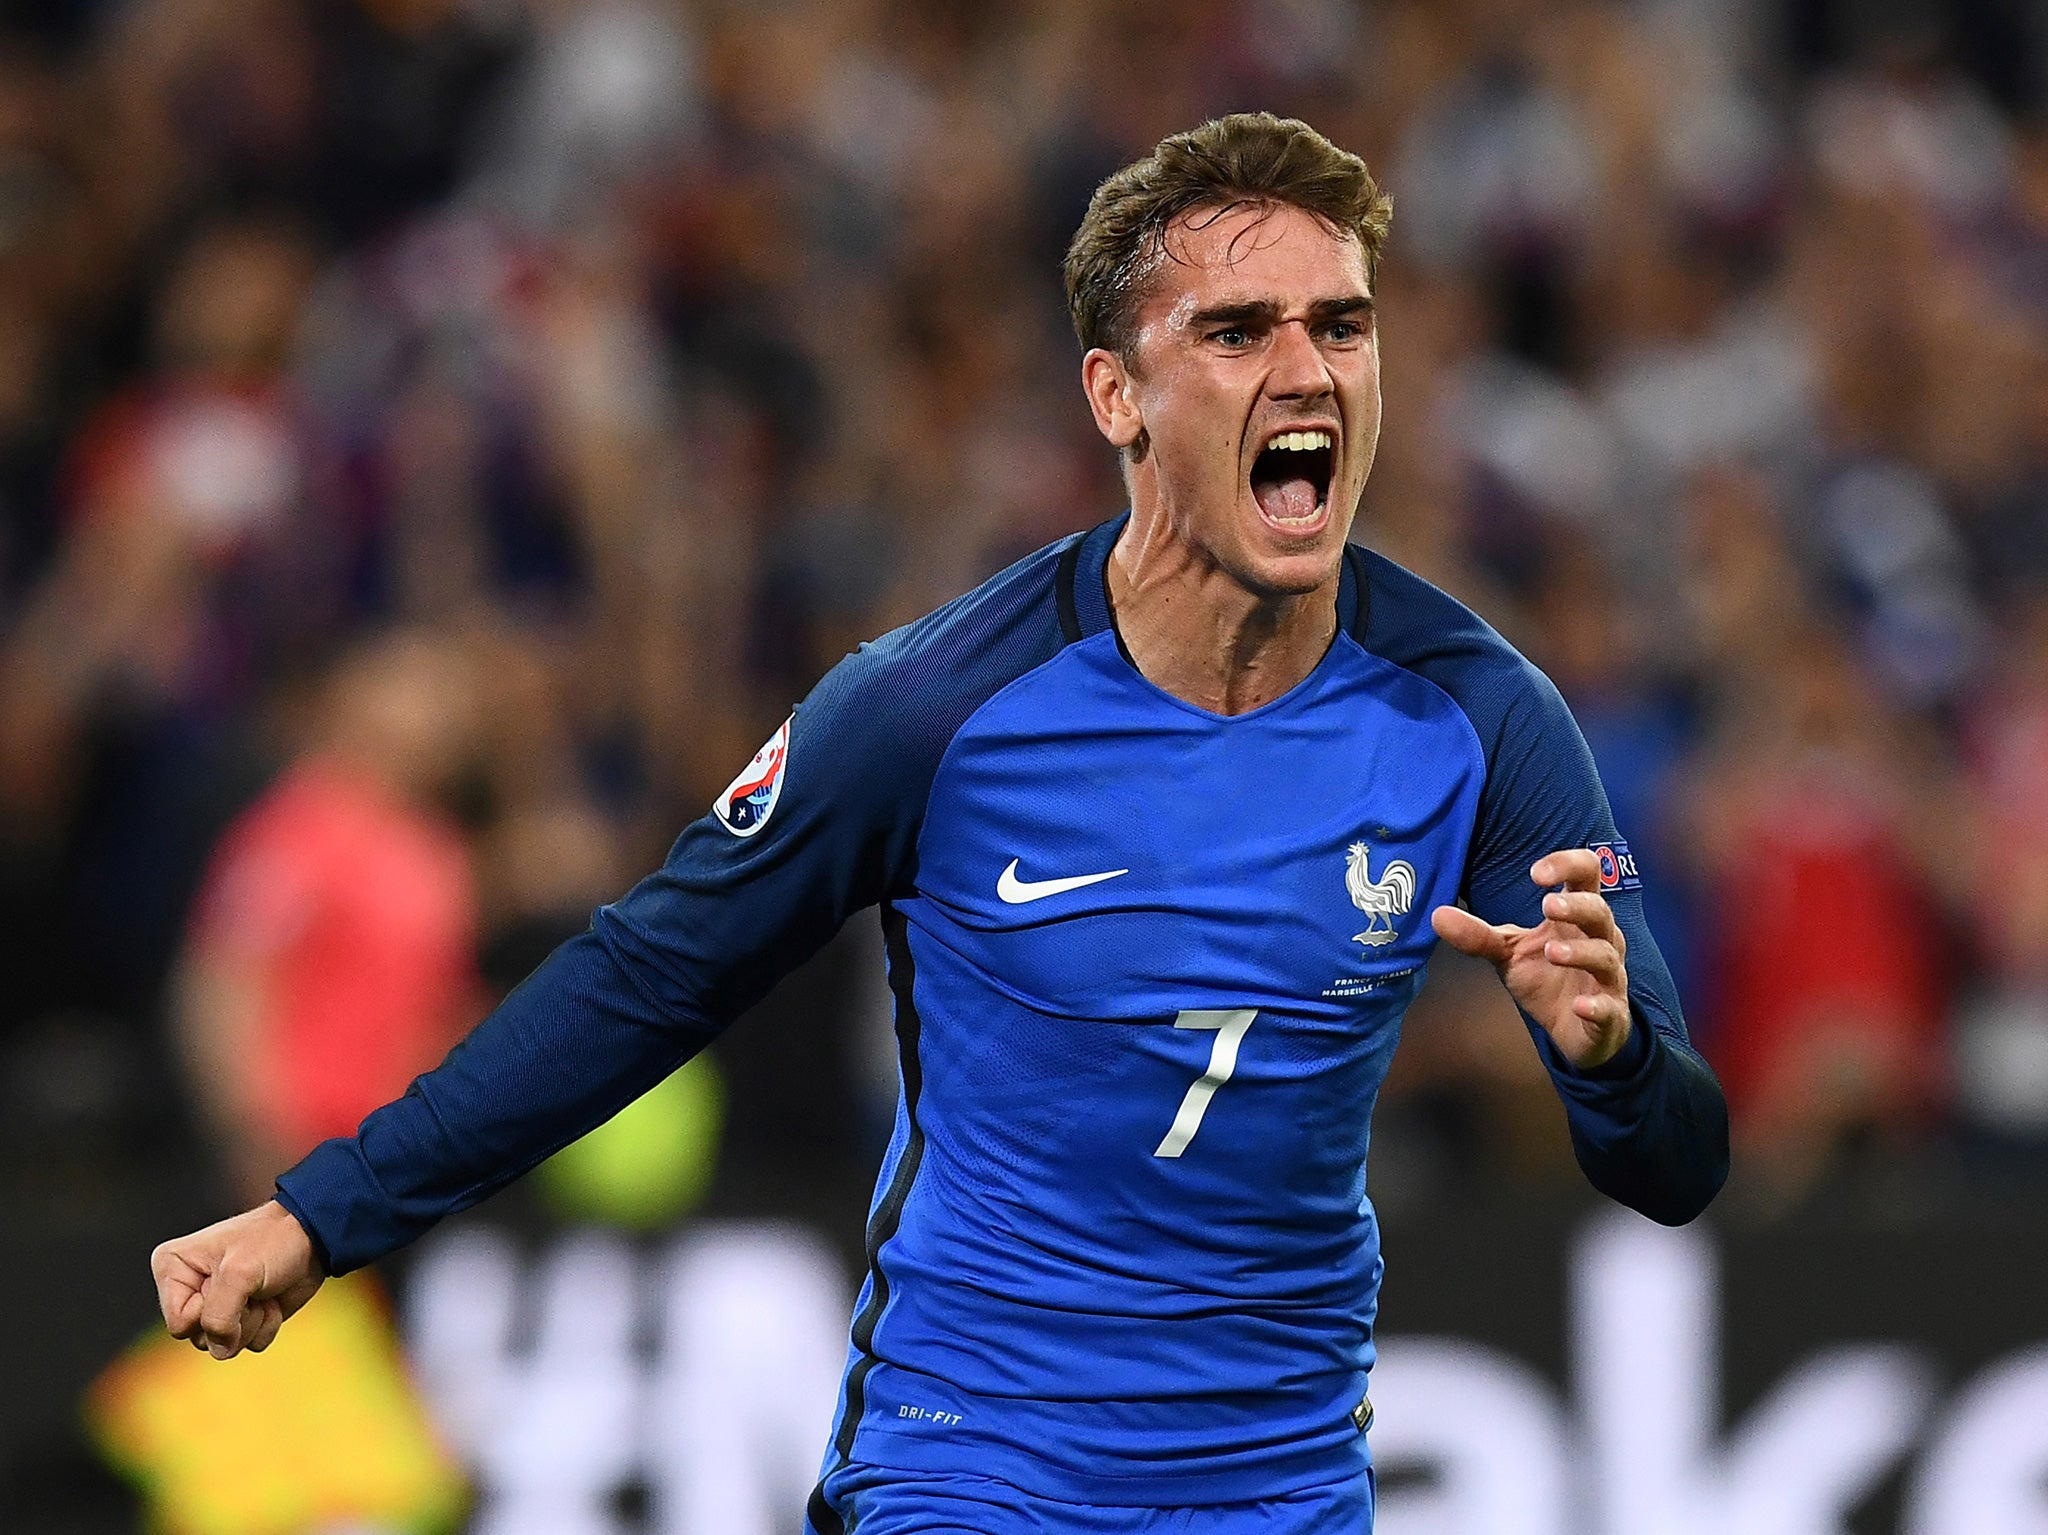 Chelsea and Manchester United covet Antoine Griezmann and the